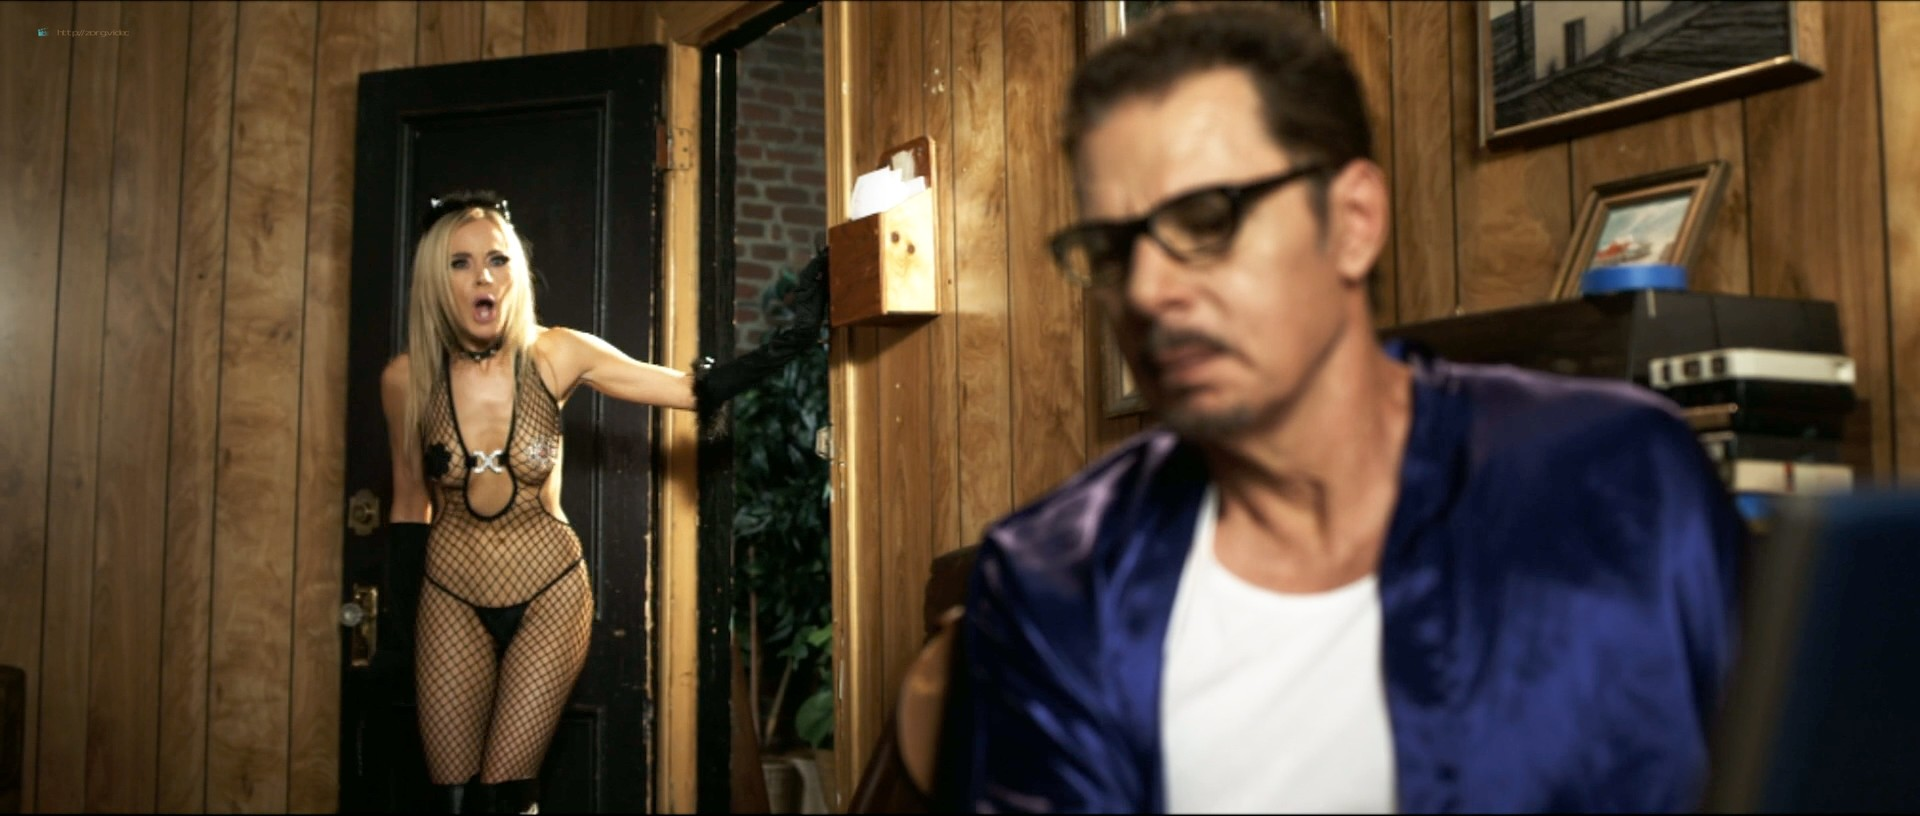 Kayden Kross nude and sex Nicole D'Angelo, Brooke Haven and others nude too - Blue Dream (2013) 1080p (18)